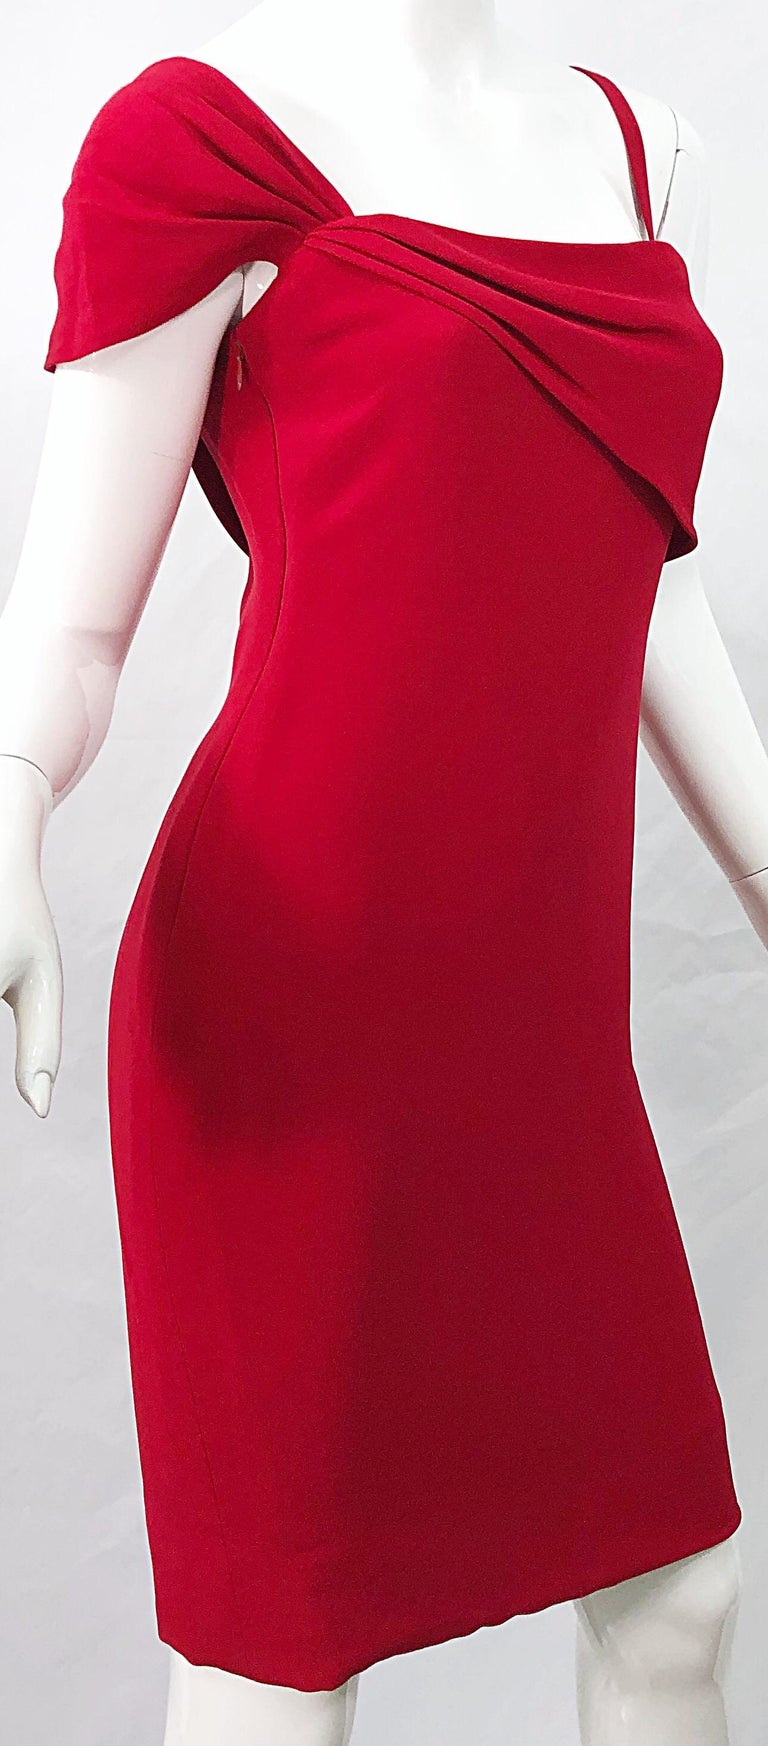 Vintage Bill Blass 1990s Size 6 Lipstick Red One Shoulder 90s Silk Dress For Sale 2